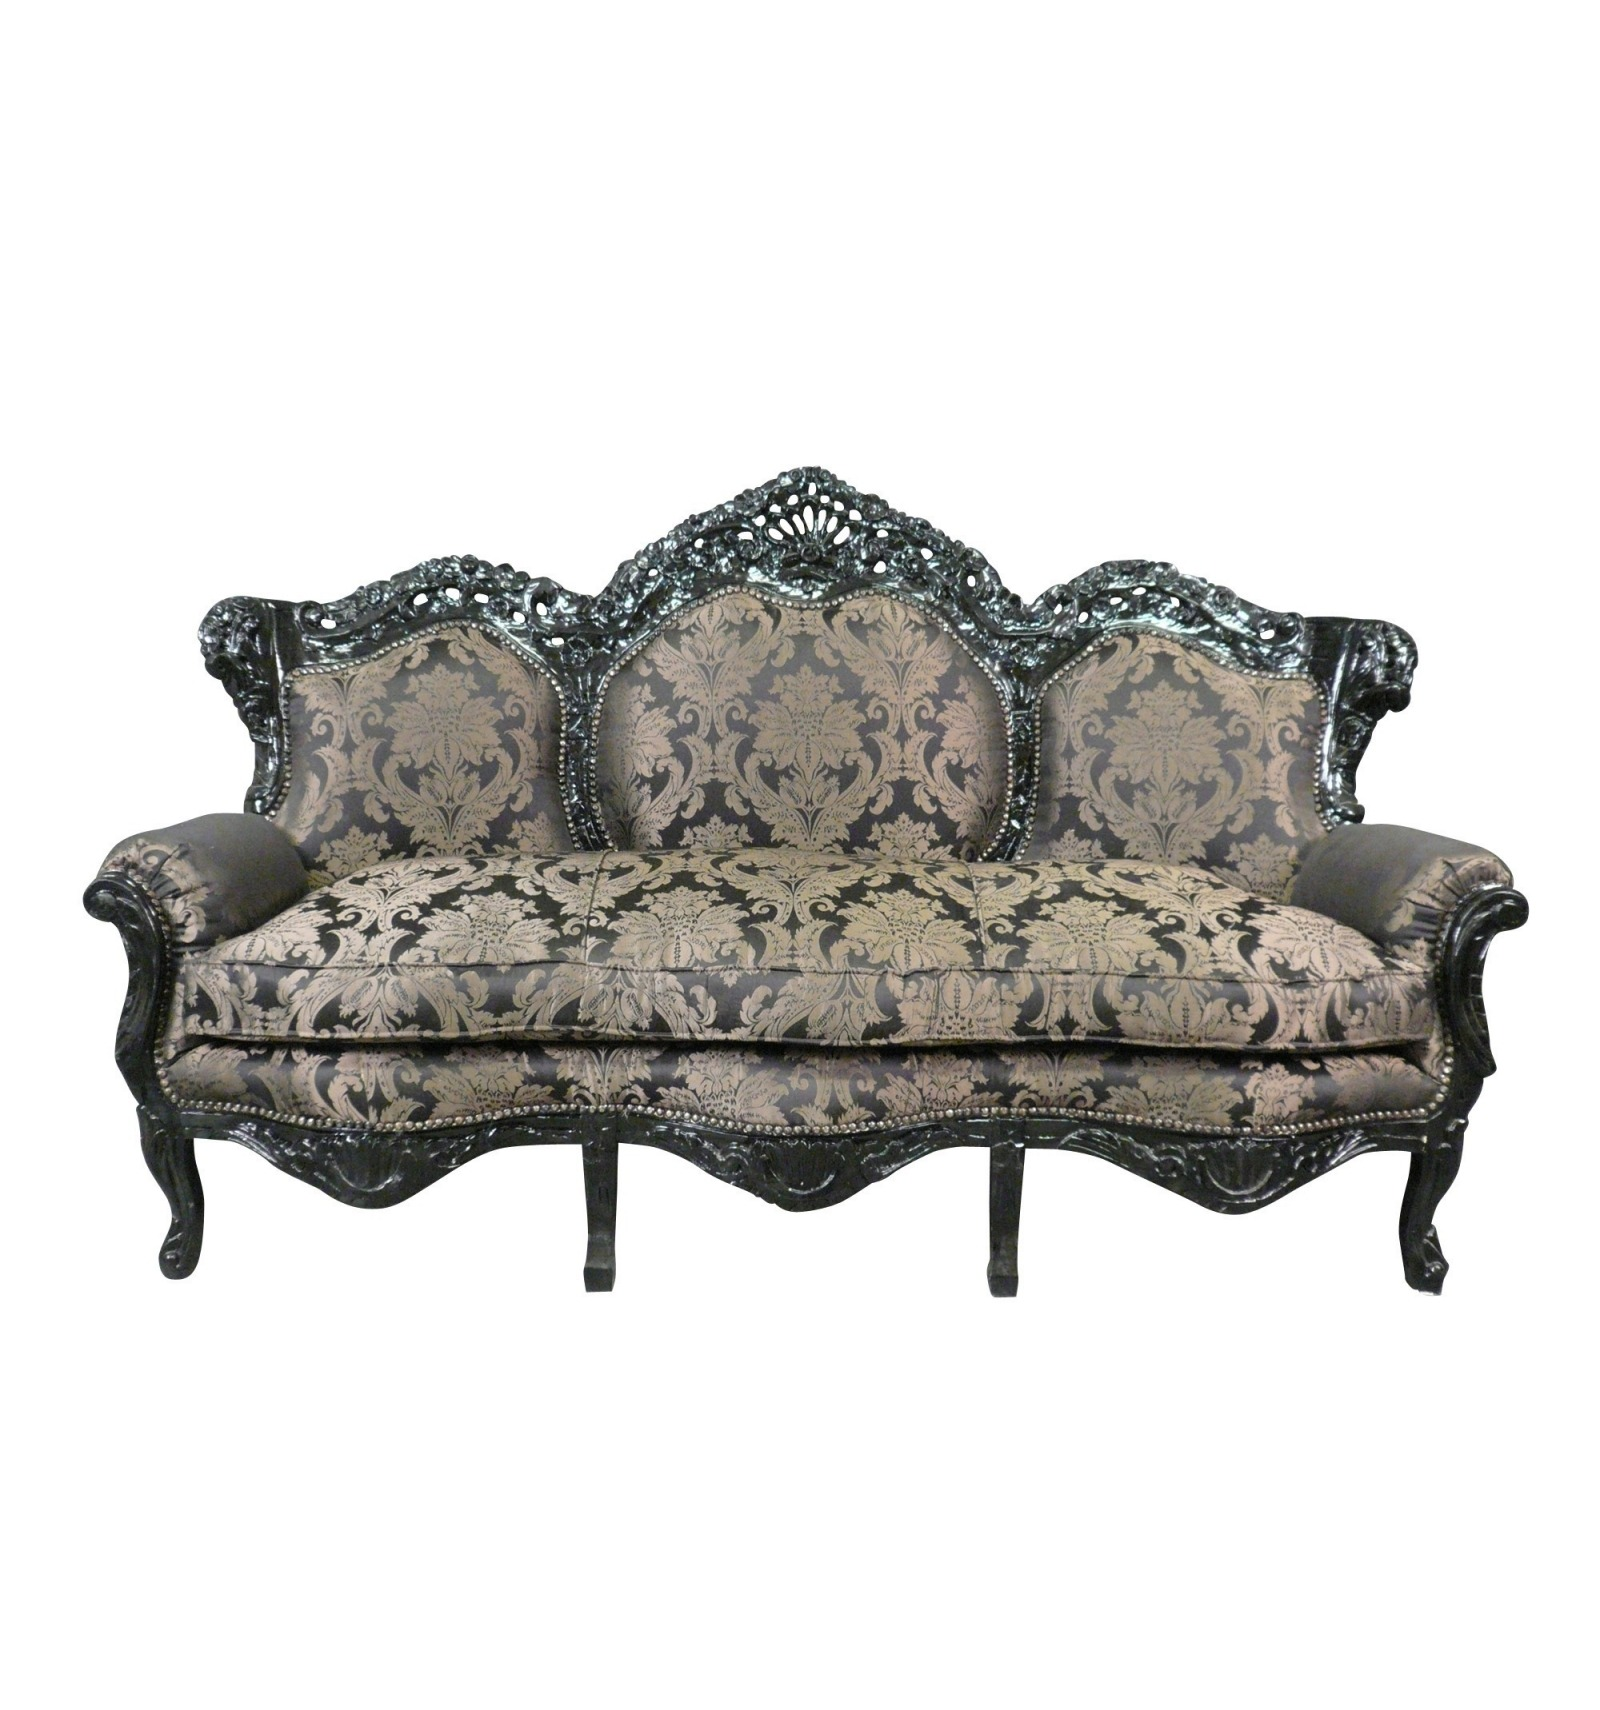 sofa barock satin stoff schwarz mit blumen. Black Bedroom Furniture Sets. Home Design Ideas